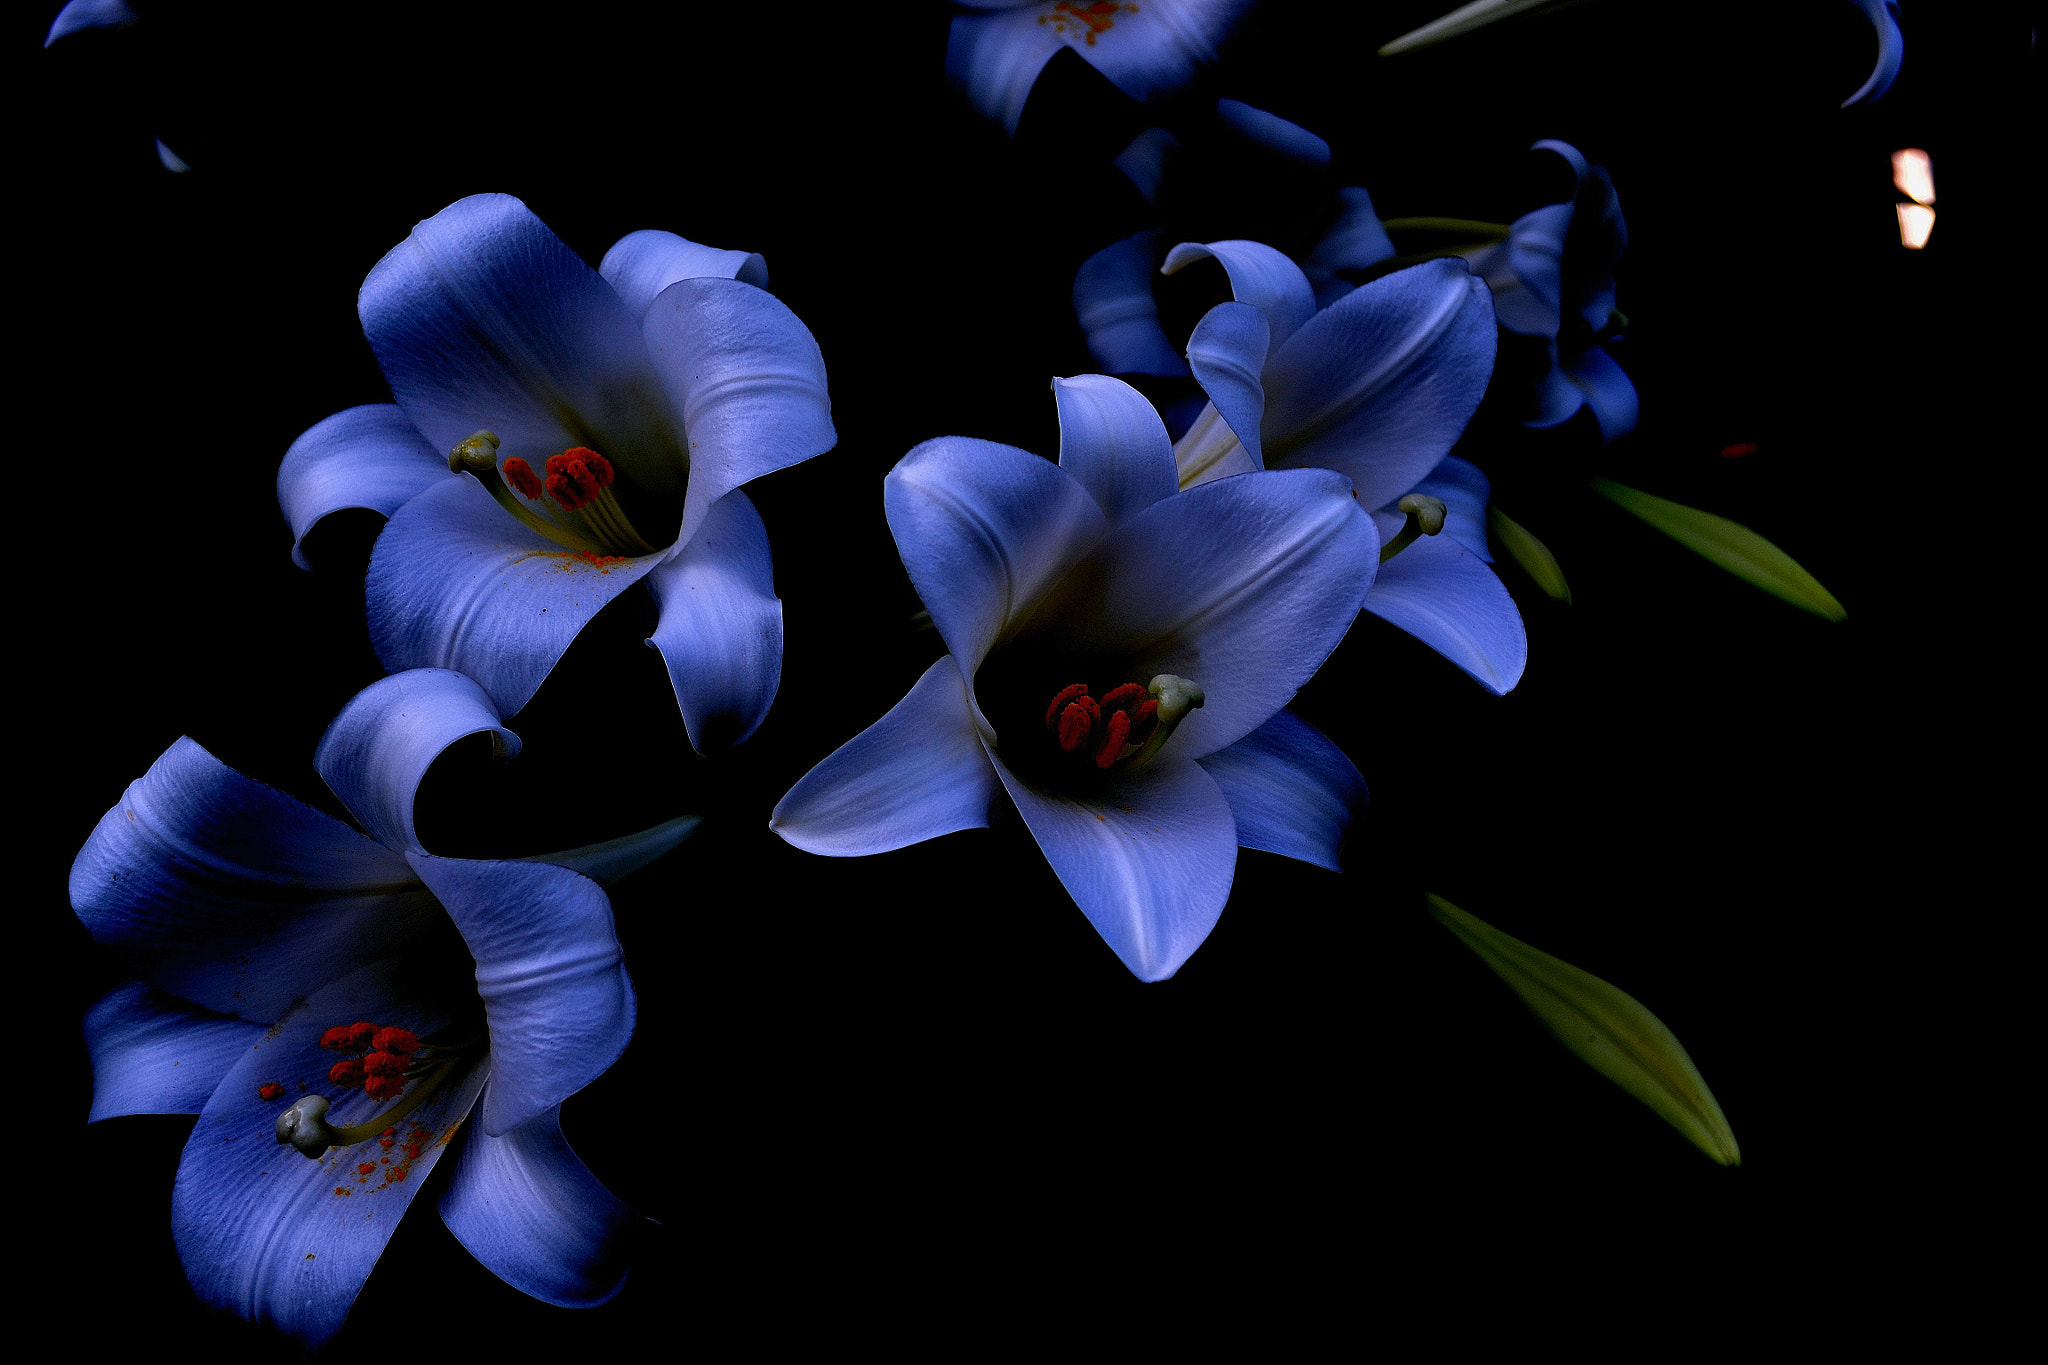 Photograph Blue Lilies At Night by Patricia Warren on 500px